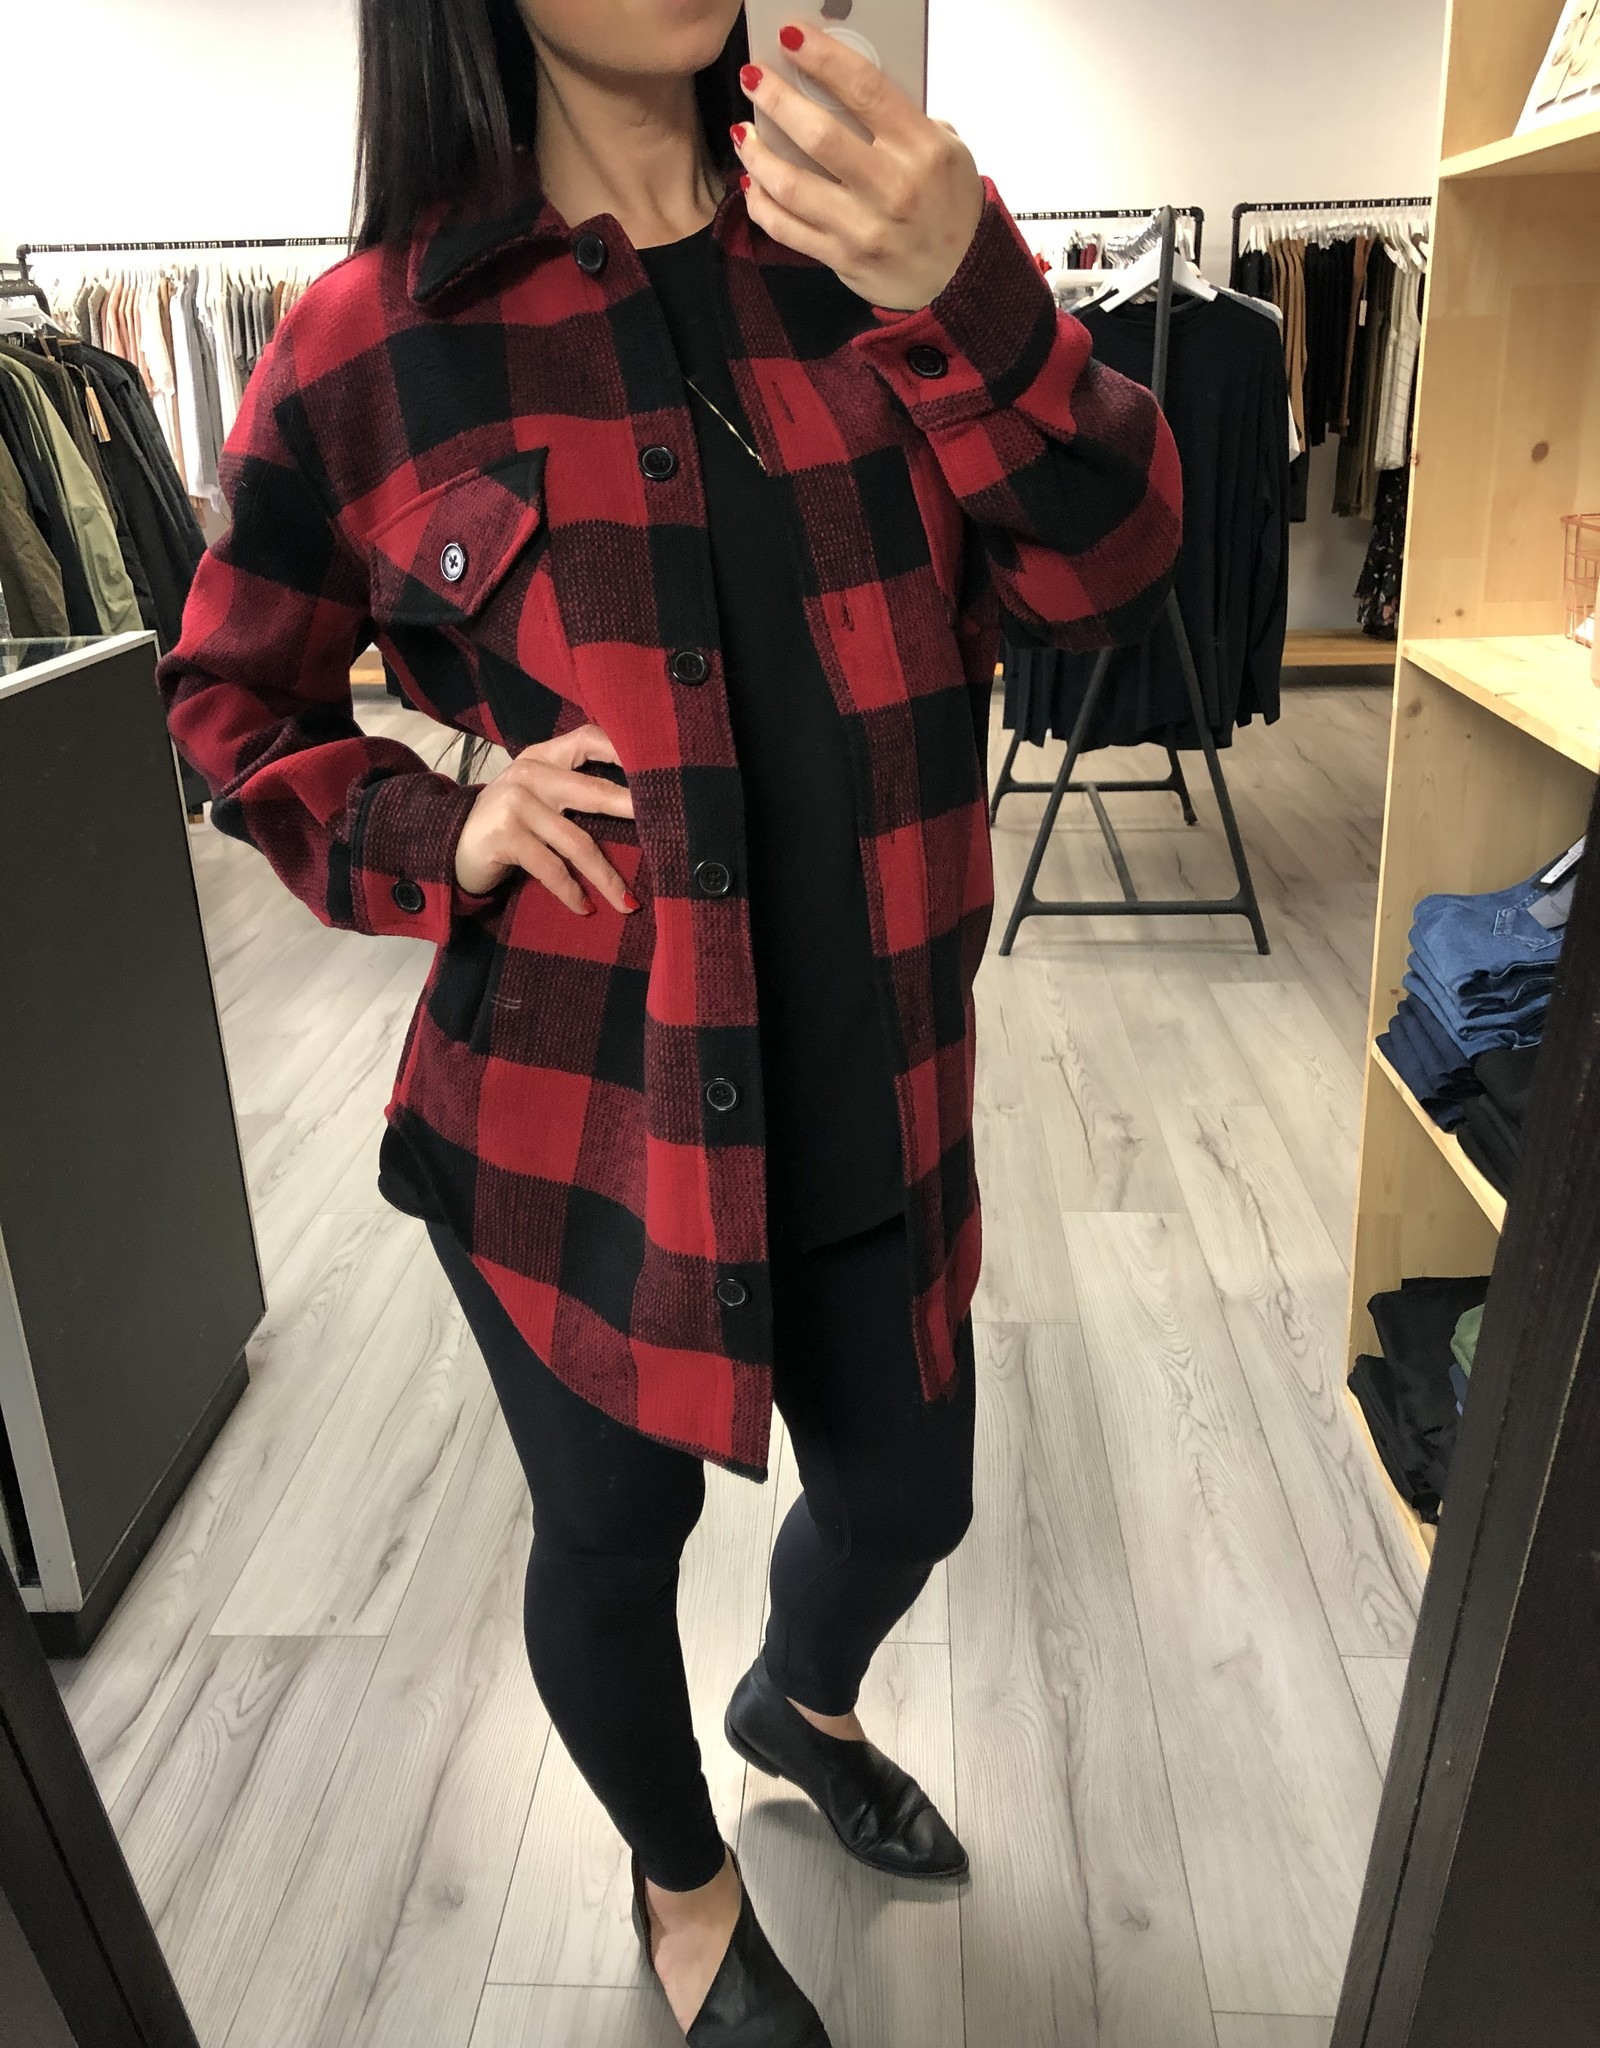 RD STYLE RECYCLED Fibers, Classic Plaid Jacket